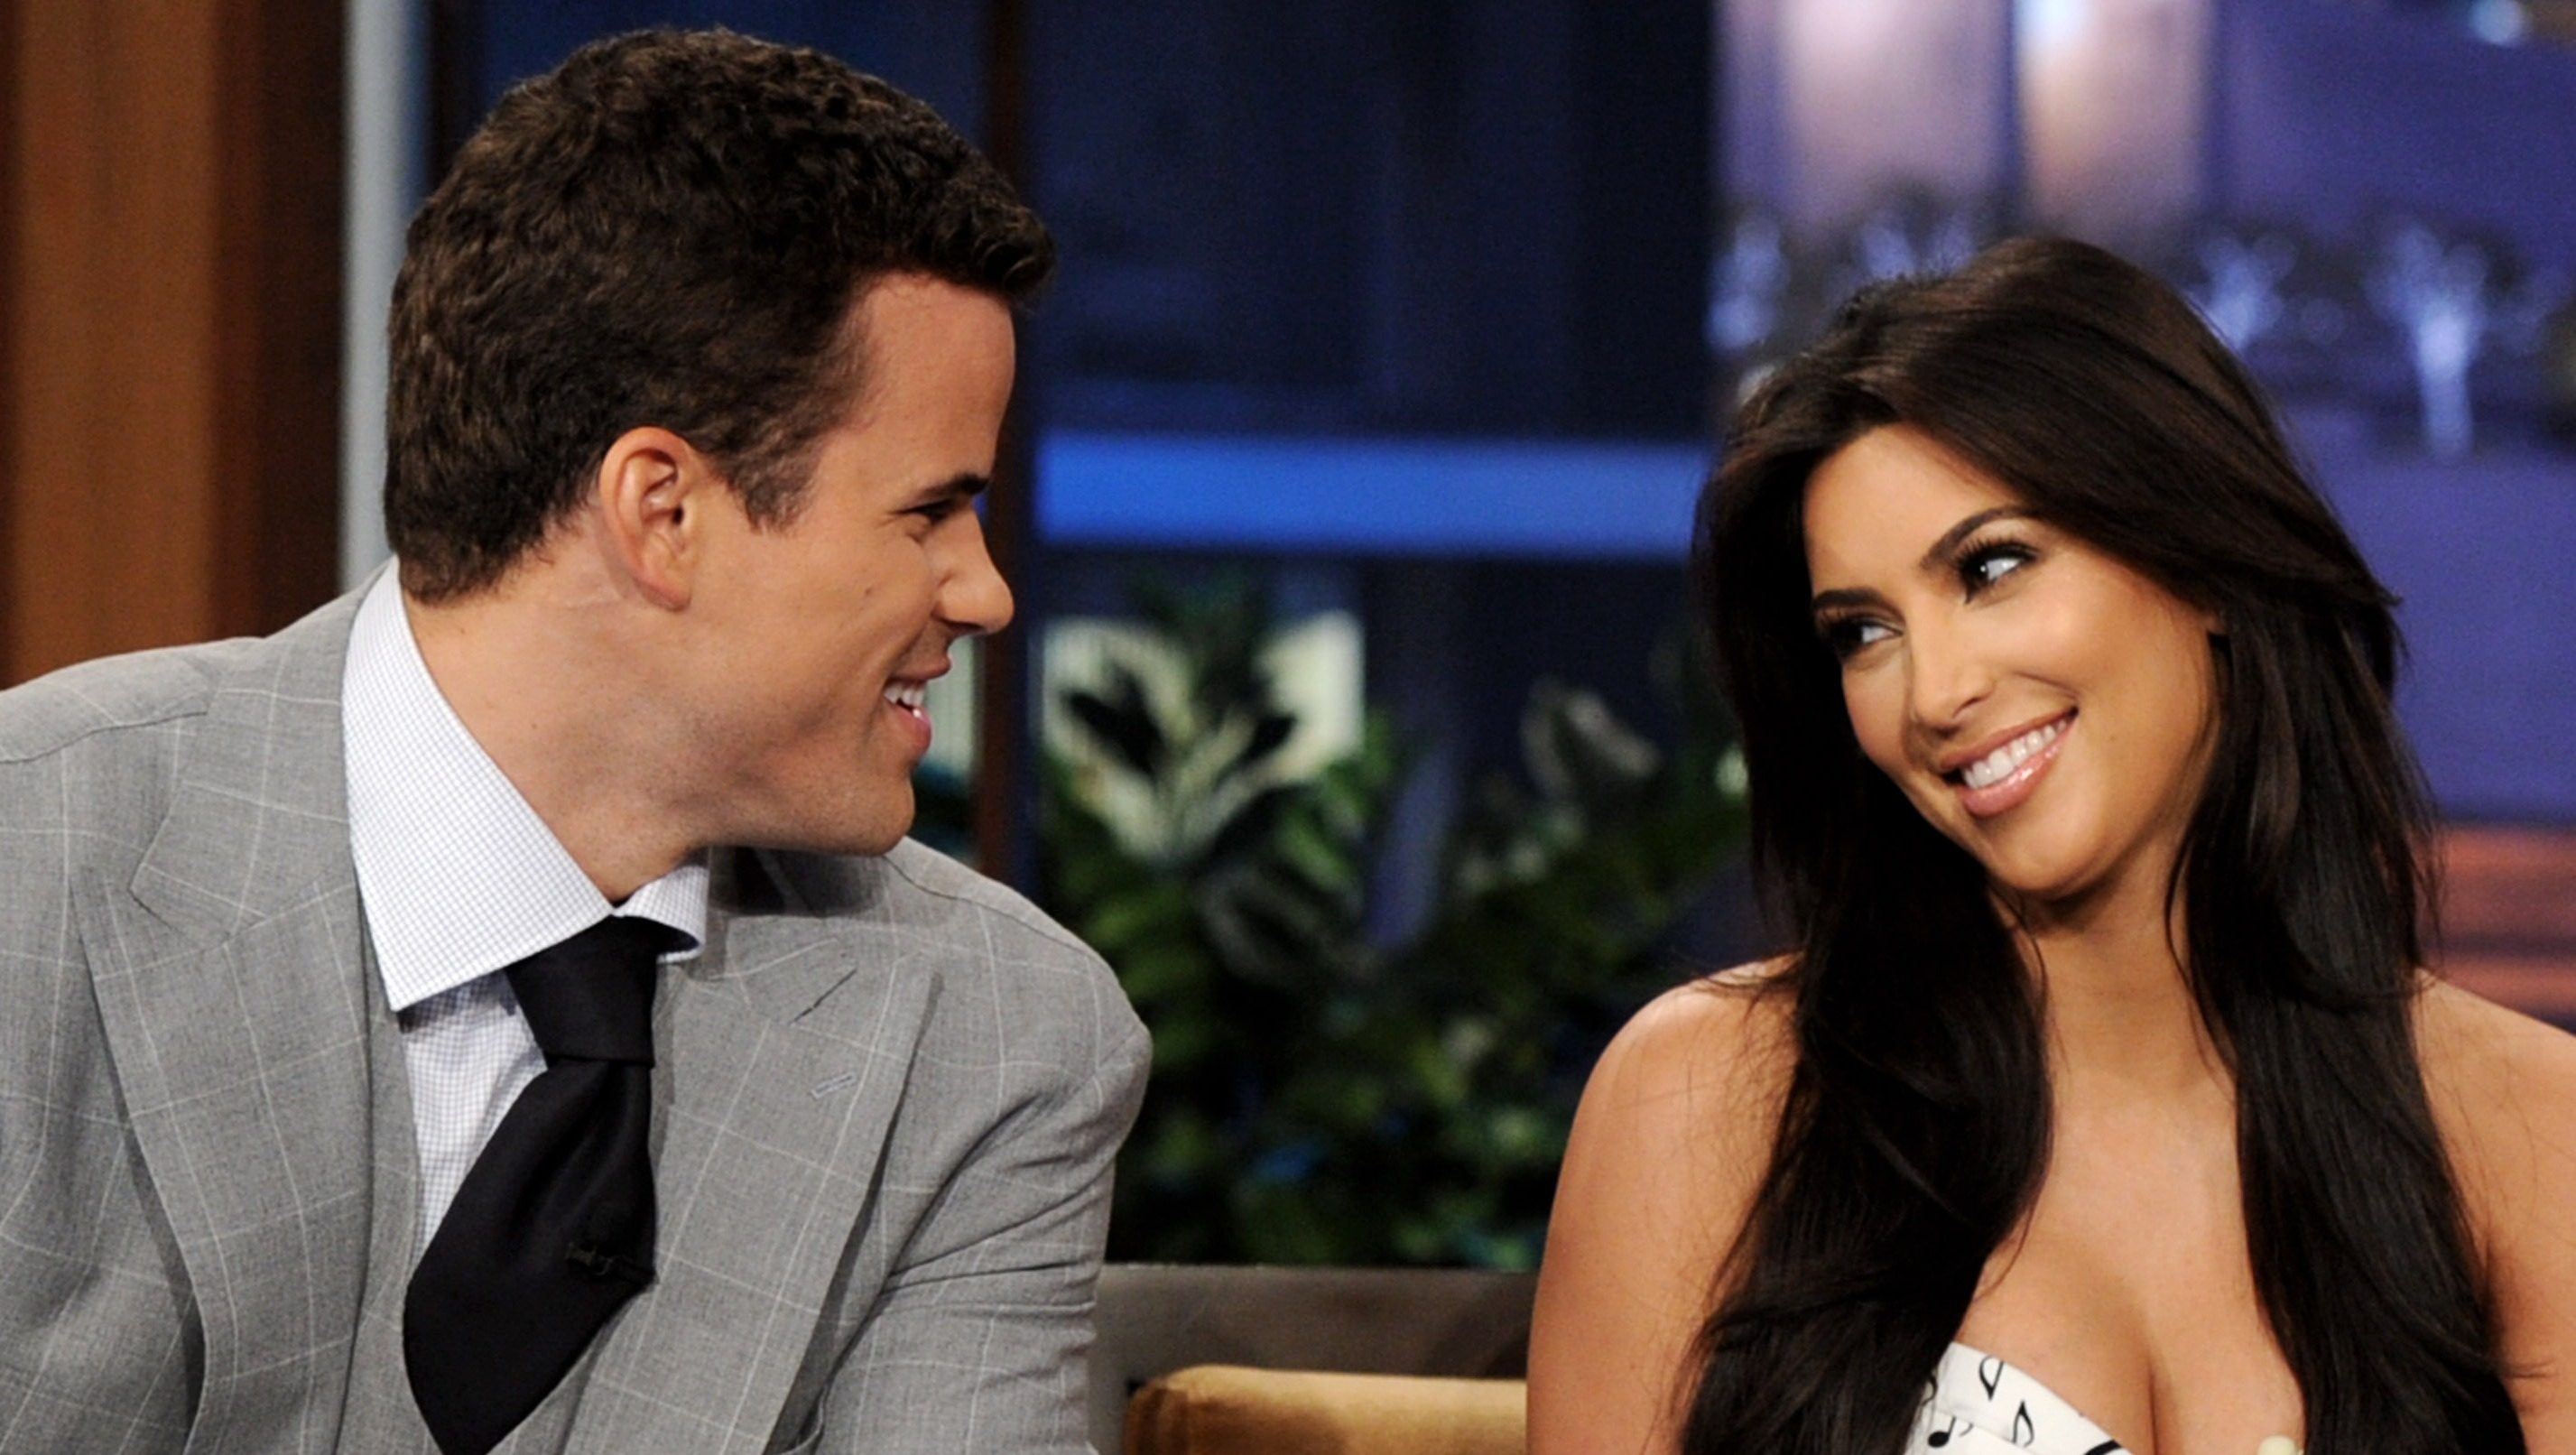 NBA player Kris Humphries (L) and his wife reality TV personality Kim Kardashian appear on the Tonight Show With Jay Leno at NBC Studios on October 4, 2011 in Burbank, California.